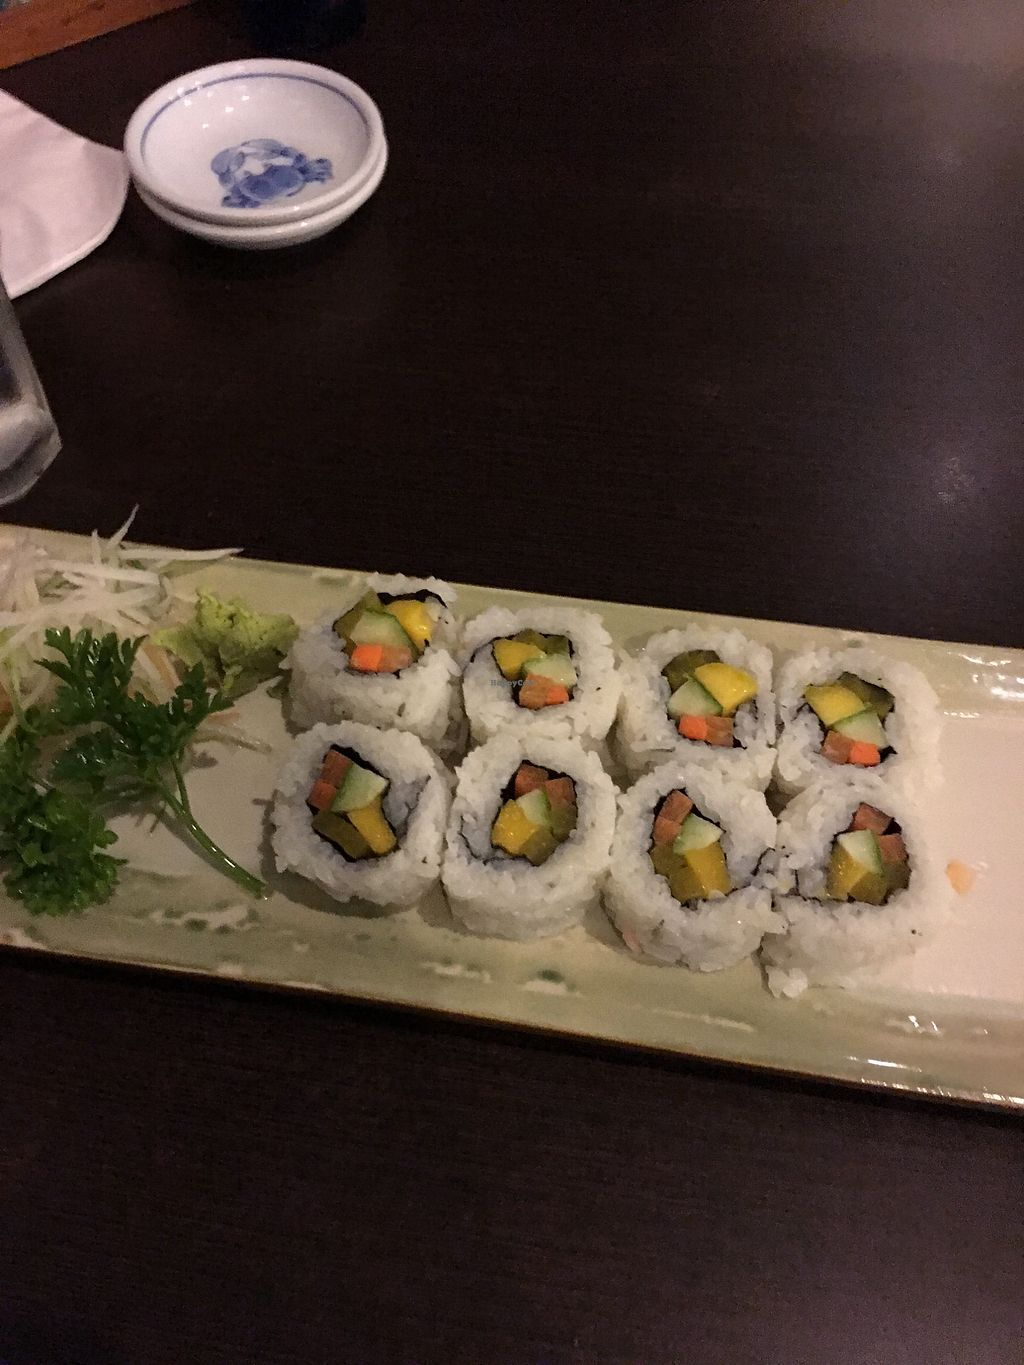 """Photo of Tsuru  by <a href=""""/members/profile/Durianrider"""">Durianrider</a> <br/>Vegan sushi <br/> October 8, 2017  - <a href='/contact/abuse/image/62341/313082'>Report</a>"""